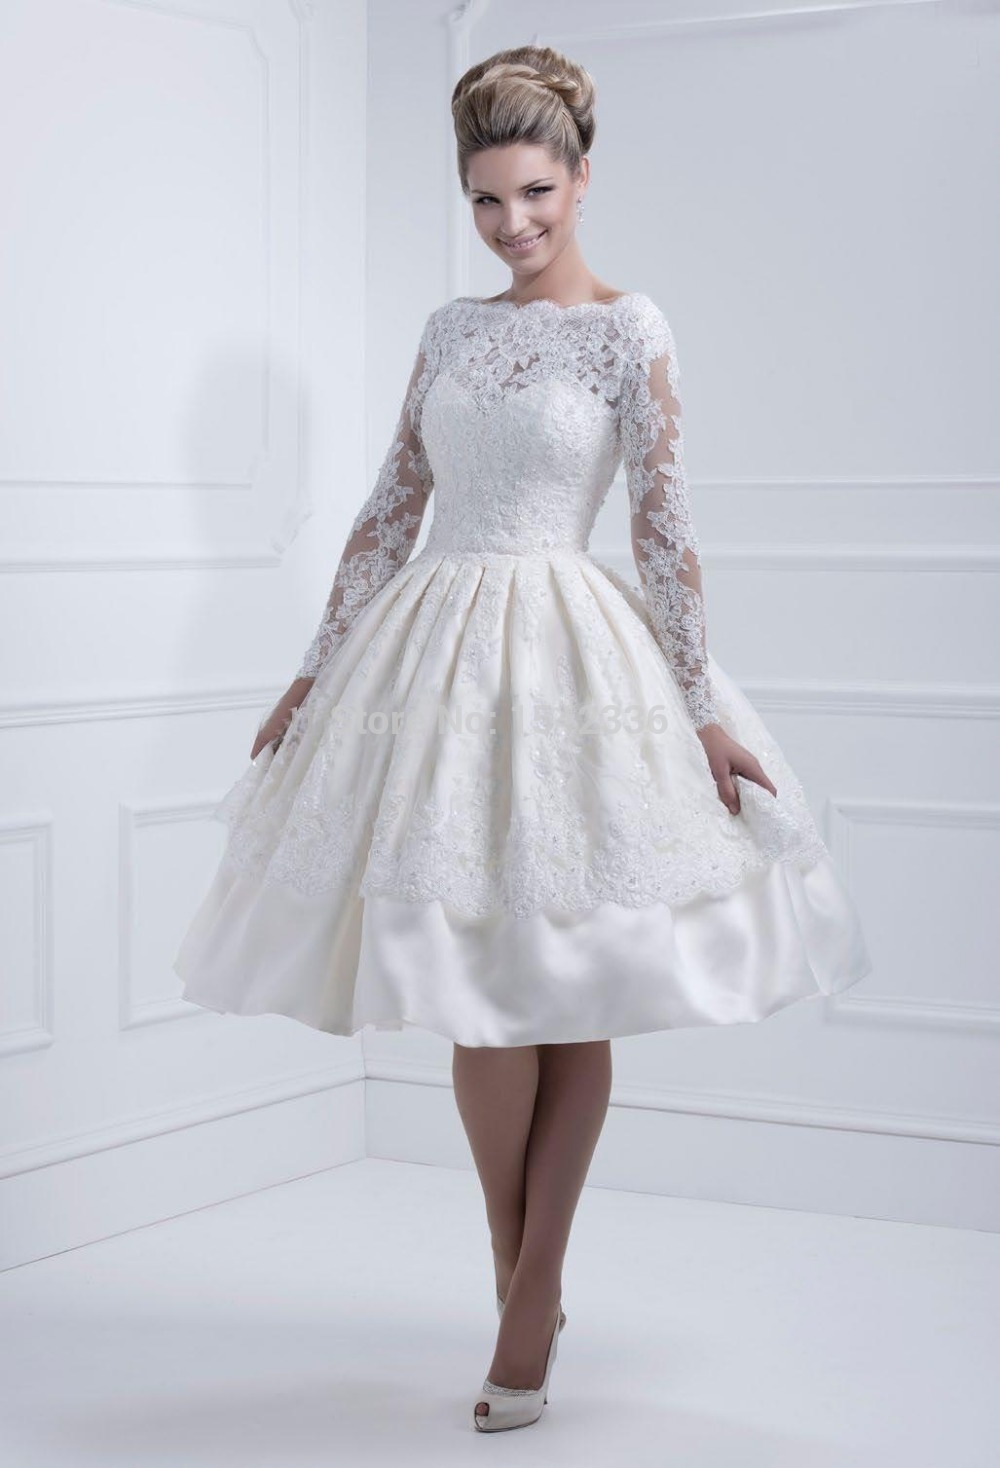 Lace long sleeves wedding dresses 2016 bateau neckline new for Lace sleeve backless wedding dress